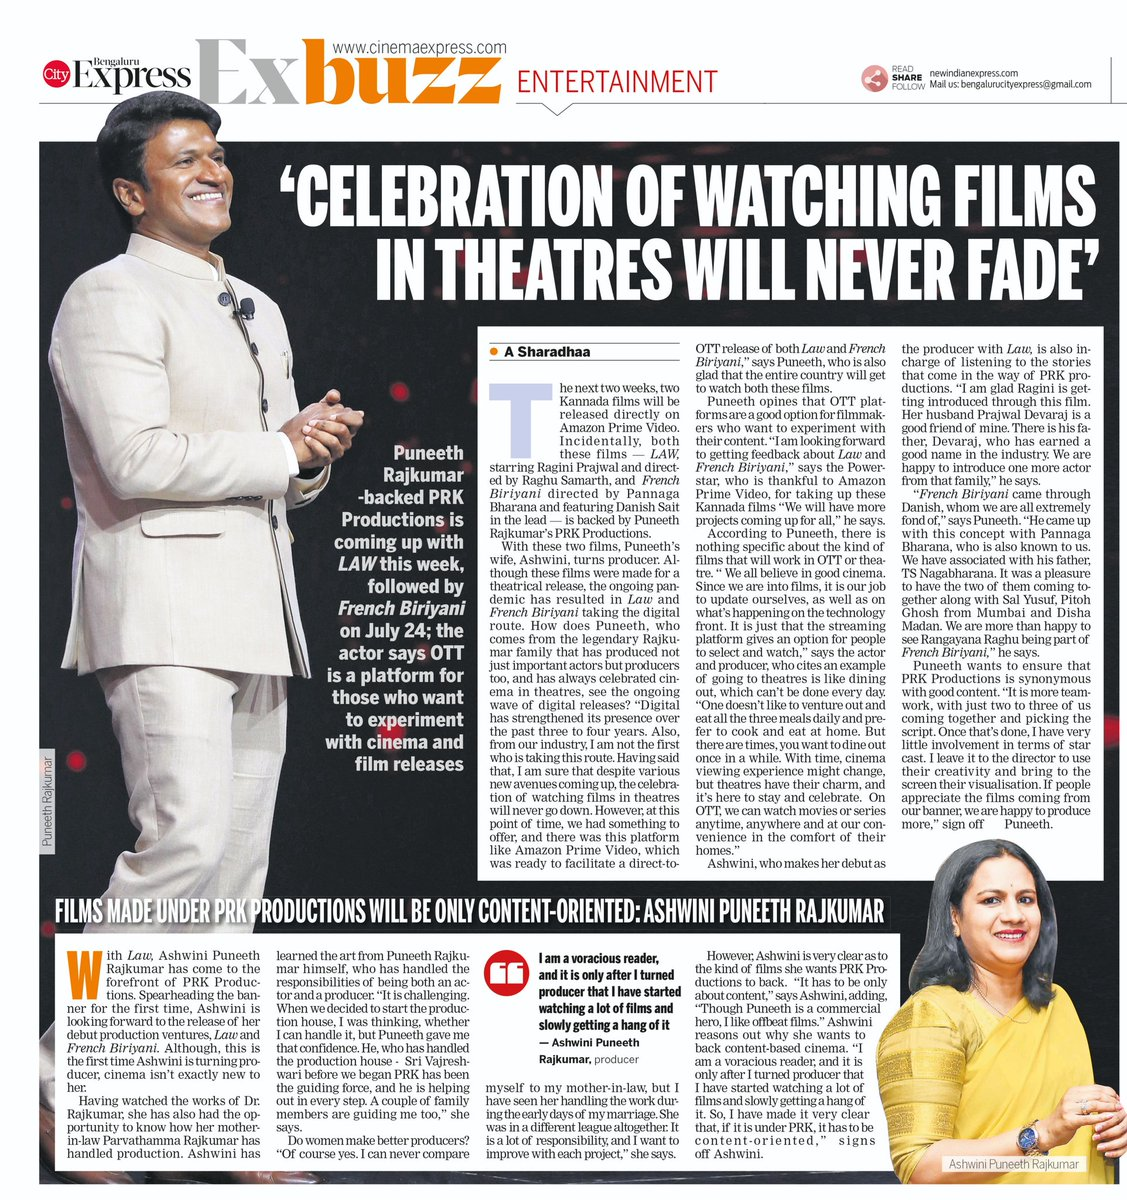 Celebration of watching #films in theatres will never fade: @PuneethRajkumar  Films made under @PRK_Productions will be only content-oriented: #ashwinipuneethrajkumar #Law #July17 #FrenchBiriyani #July24 on #OTT @PrimeVideoIN  via @XpressCinema @NamCinema